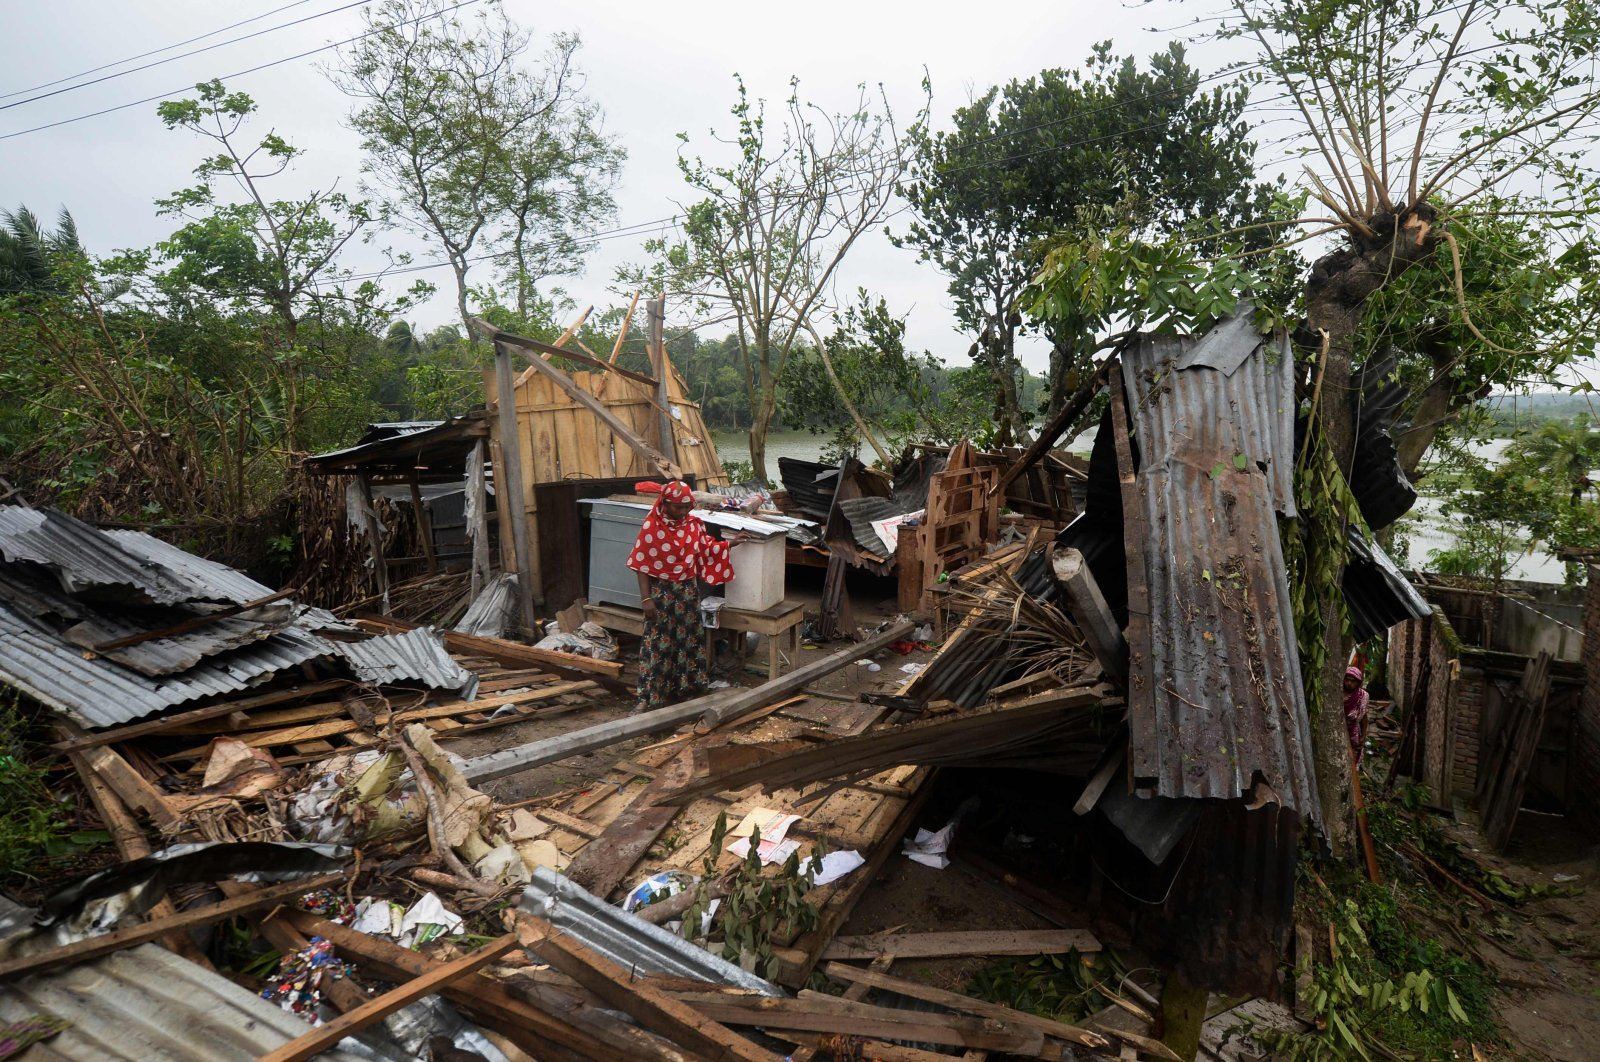 A woman stands amidst the debris of her house damaged by Cyclone Amphan in Satkhira, Bangladesh, May 21, 2020. (AFP Photo)